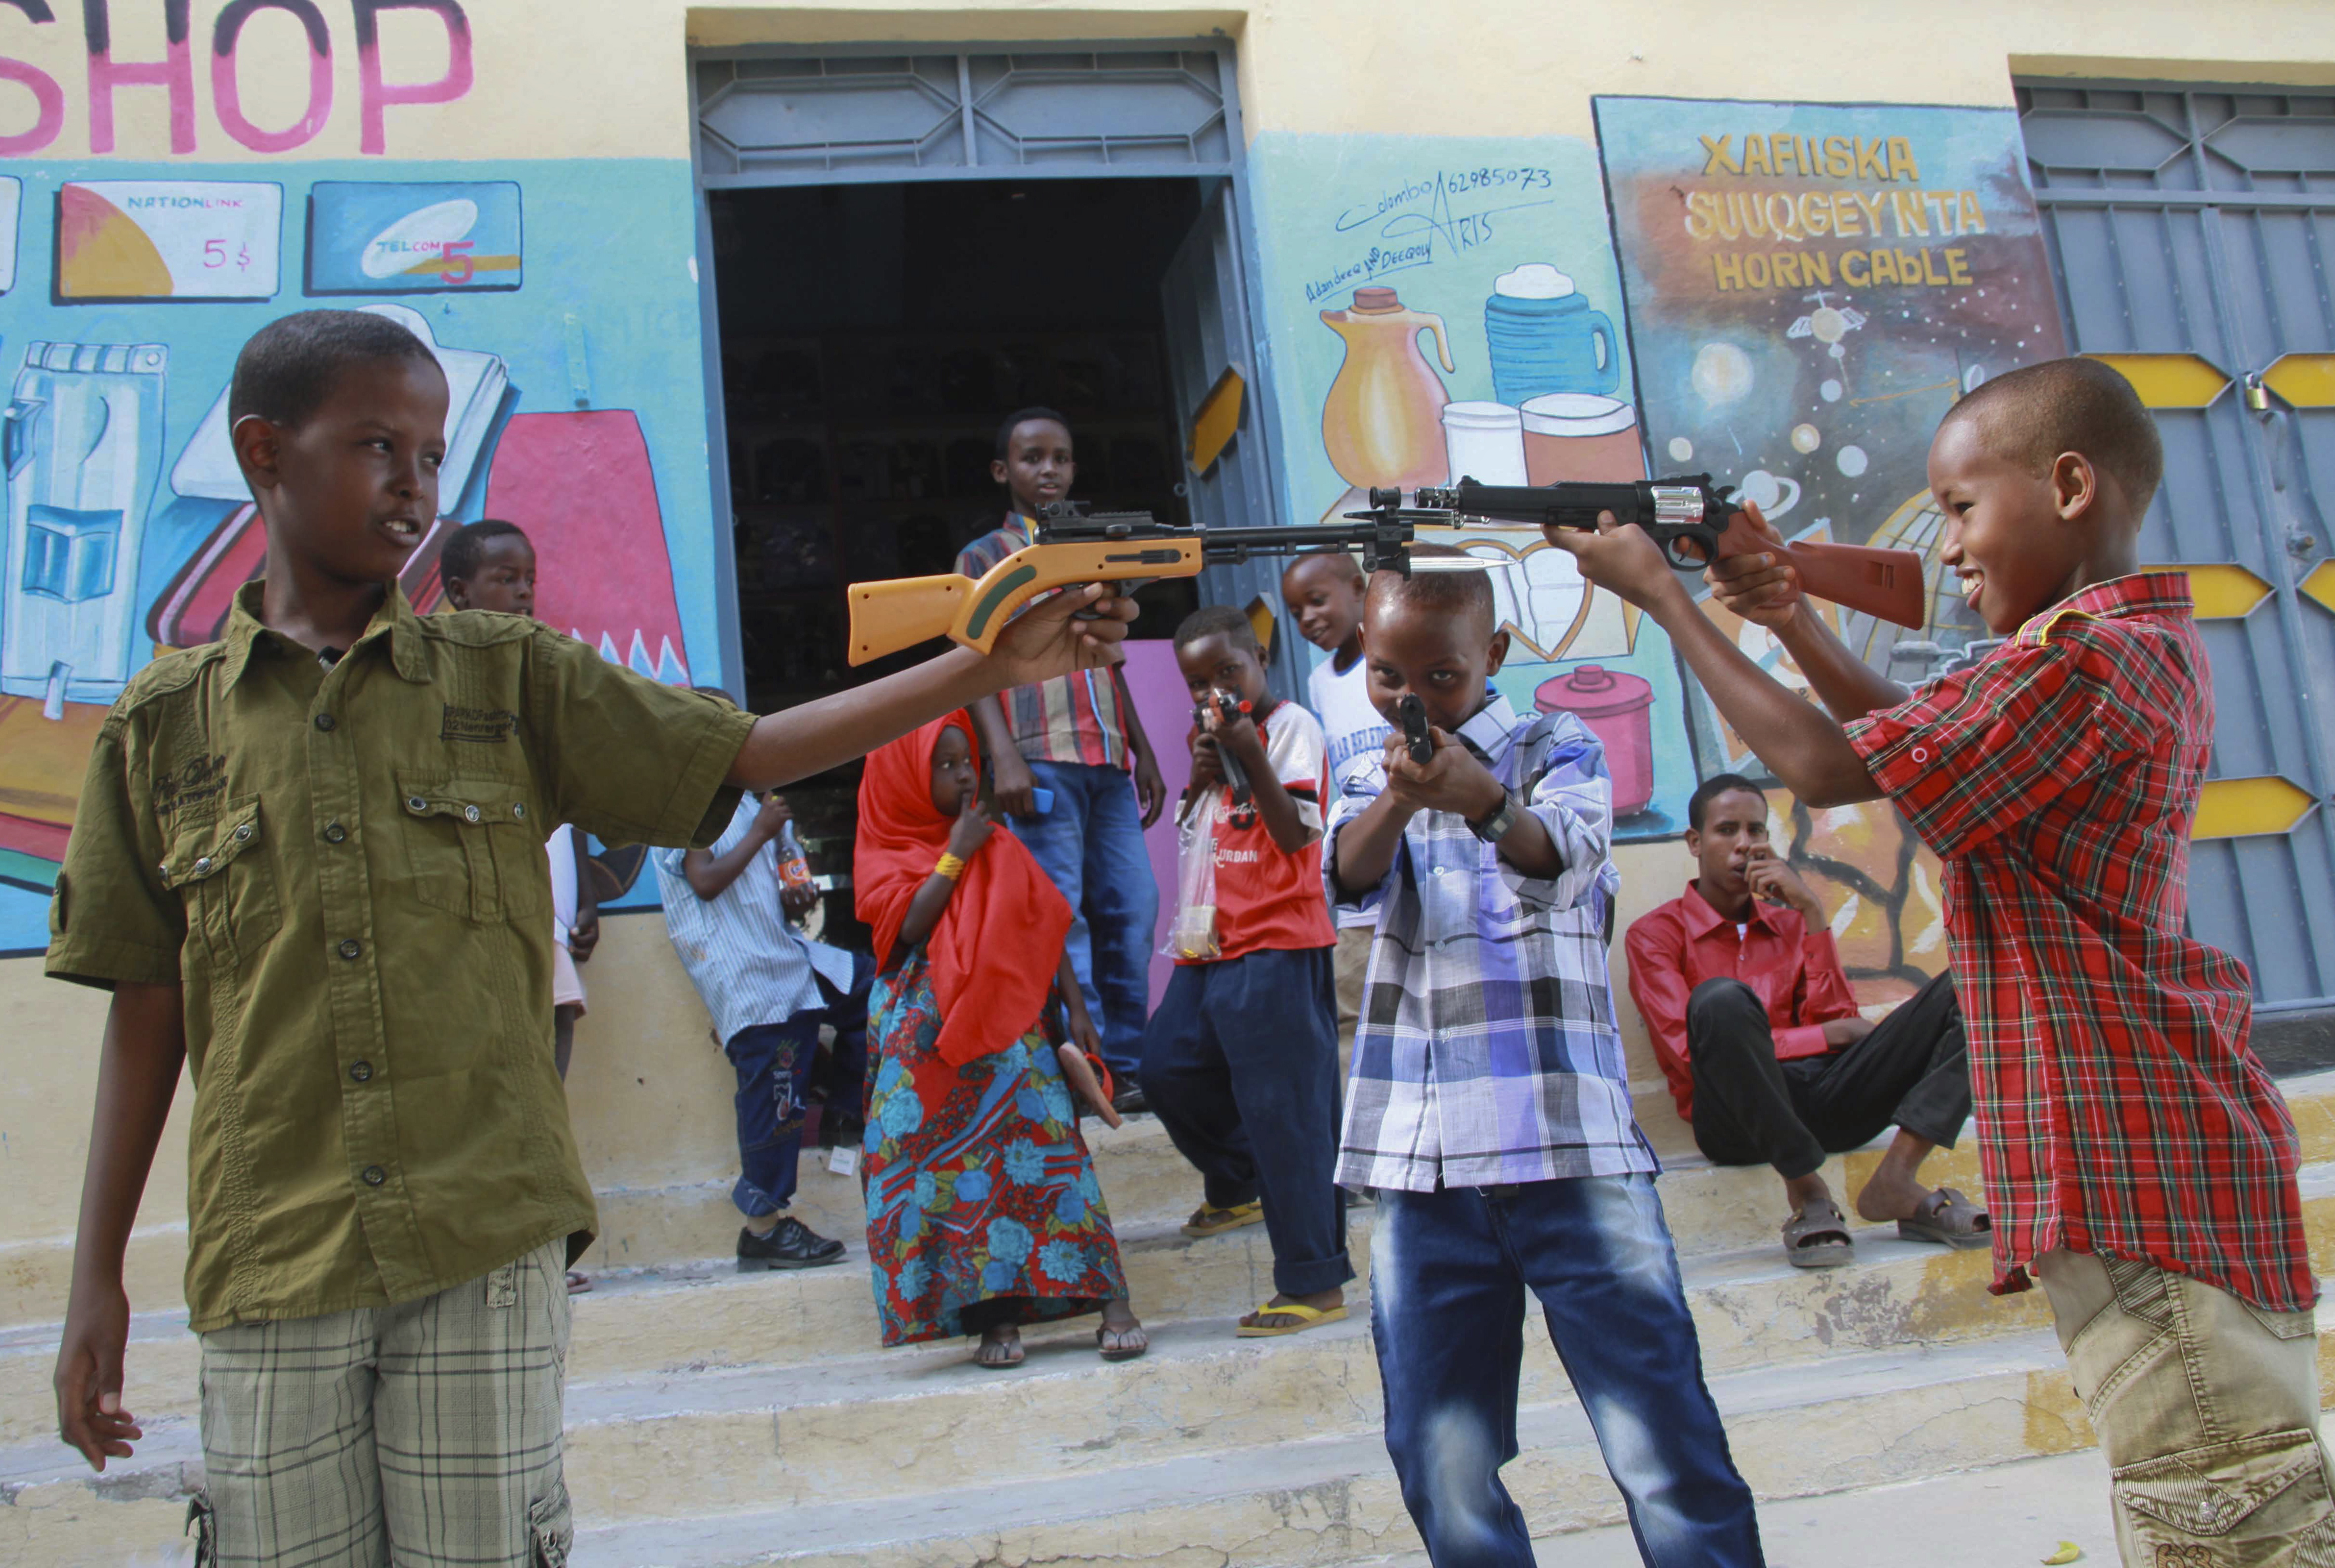 Somali children play with toy guns on the street as worshippers attend the prayer ceremony at the Isbaheysi Mosque in Mogadishu, Somalia, 19 August 2012, to celebrate Muslim holiday Eid al-Fitr which marks the end of the Muslim fasting month of Ramadan.